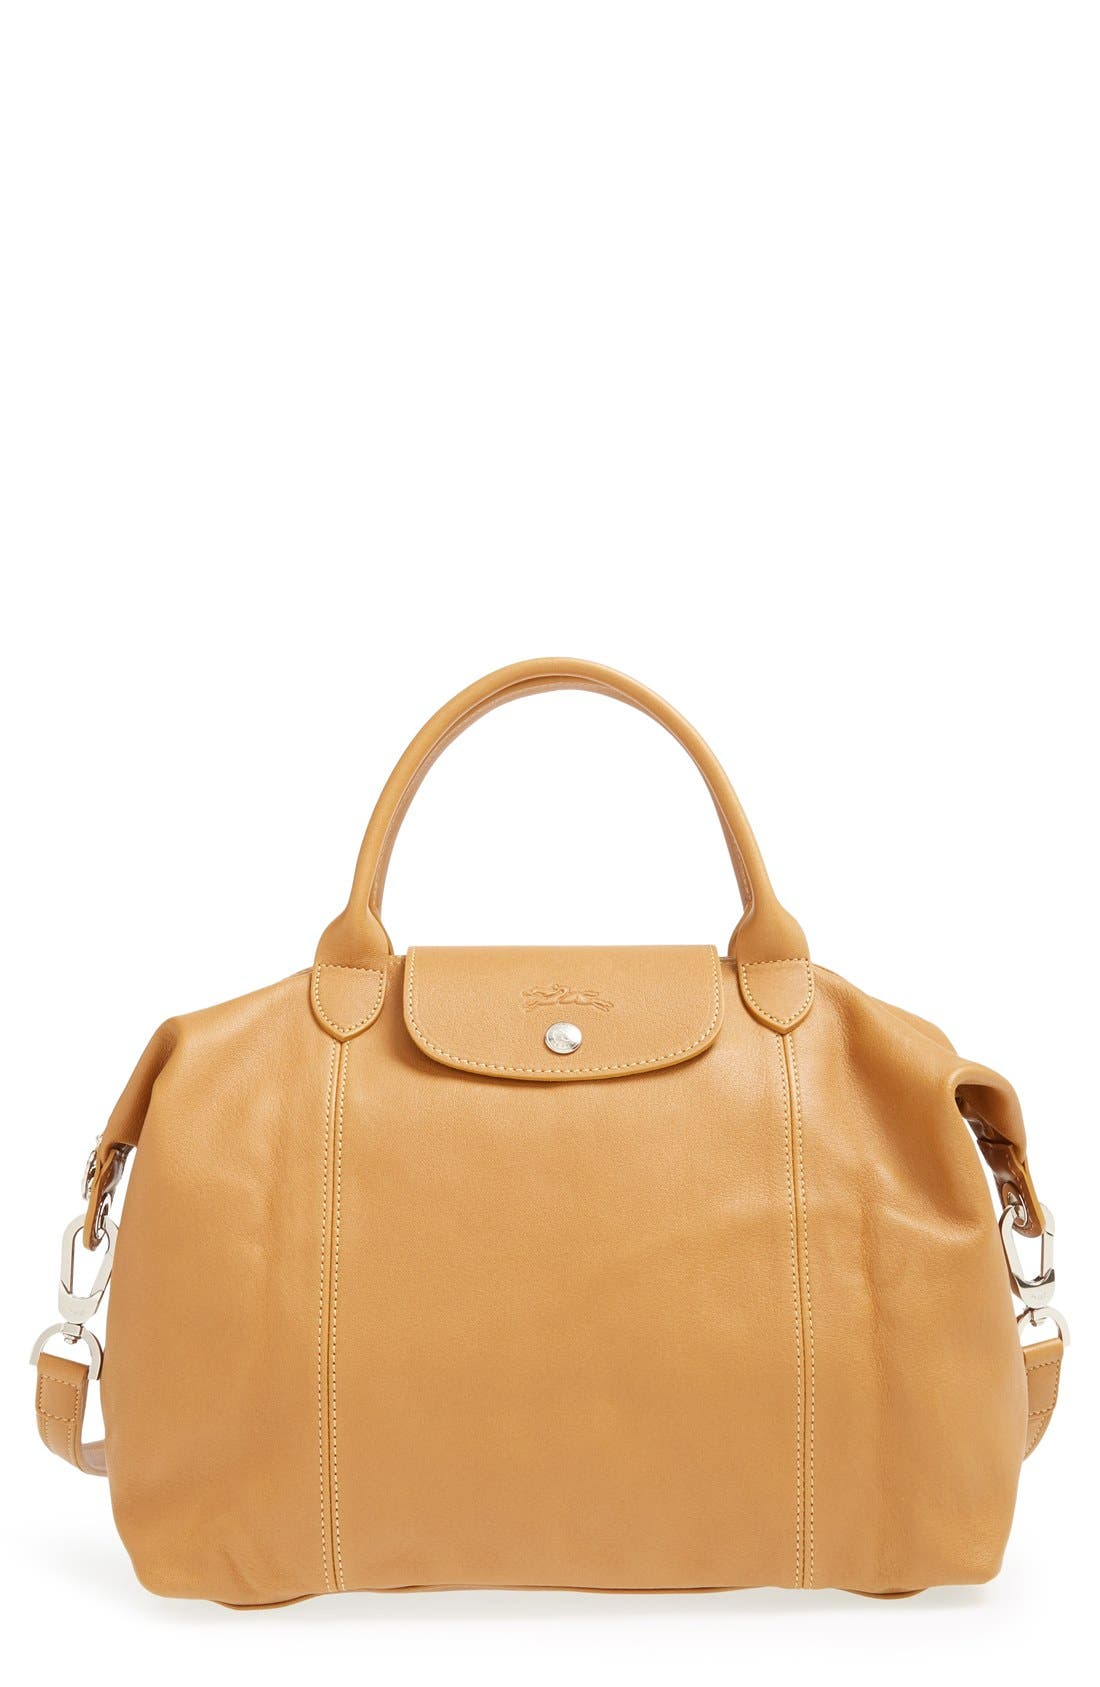 Medium 'Le Pliage Cuir' Leather Top Handle Tote,                             Main thumbnail 7, color,